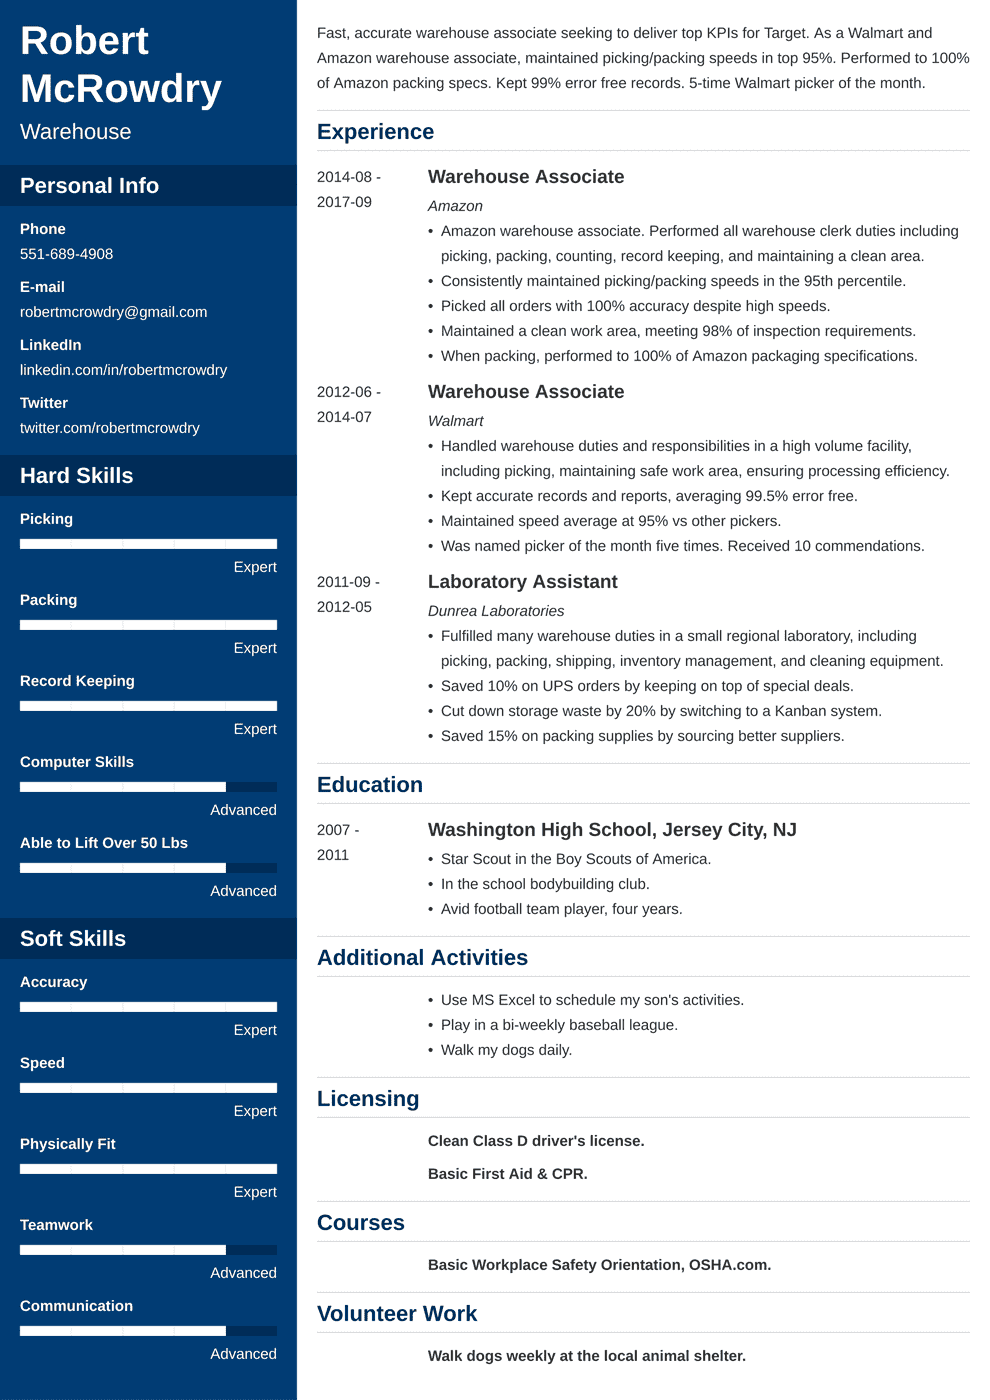 Warehouse Resume: Sample and Complete Guide [+20 Examples]